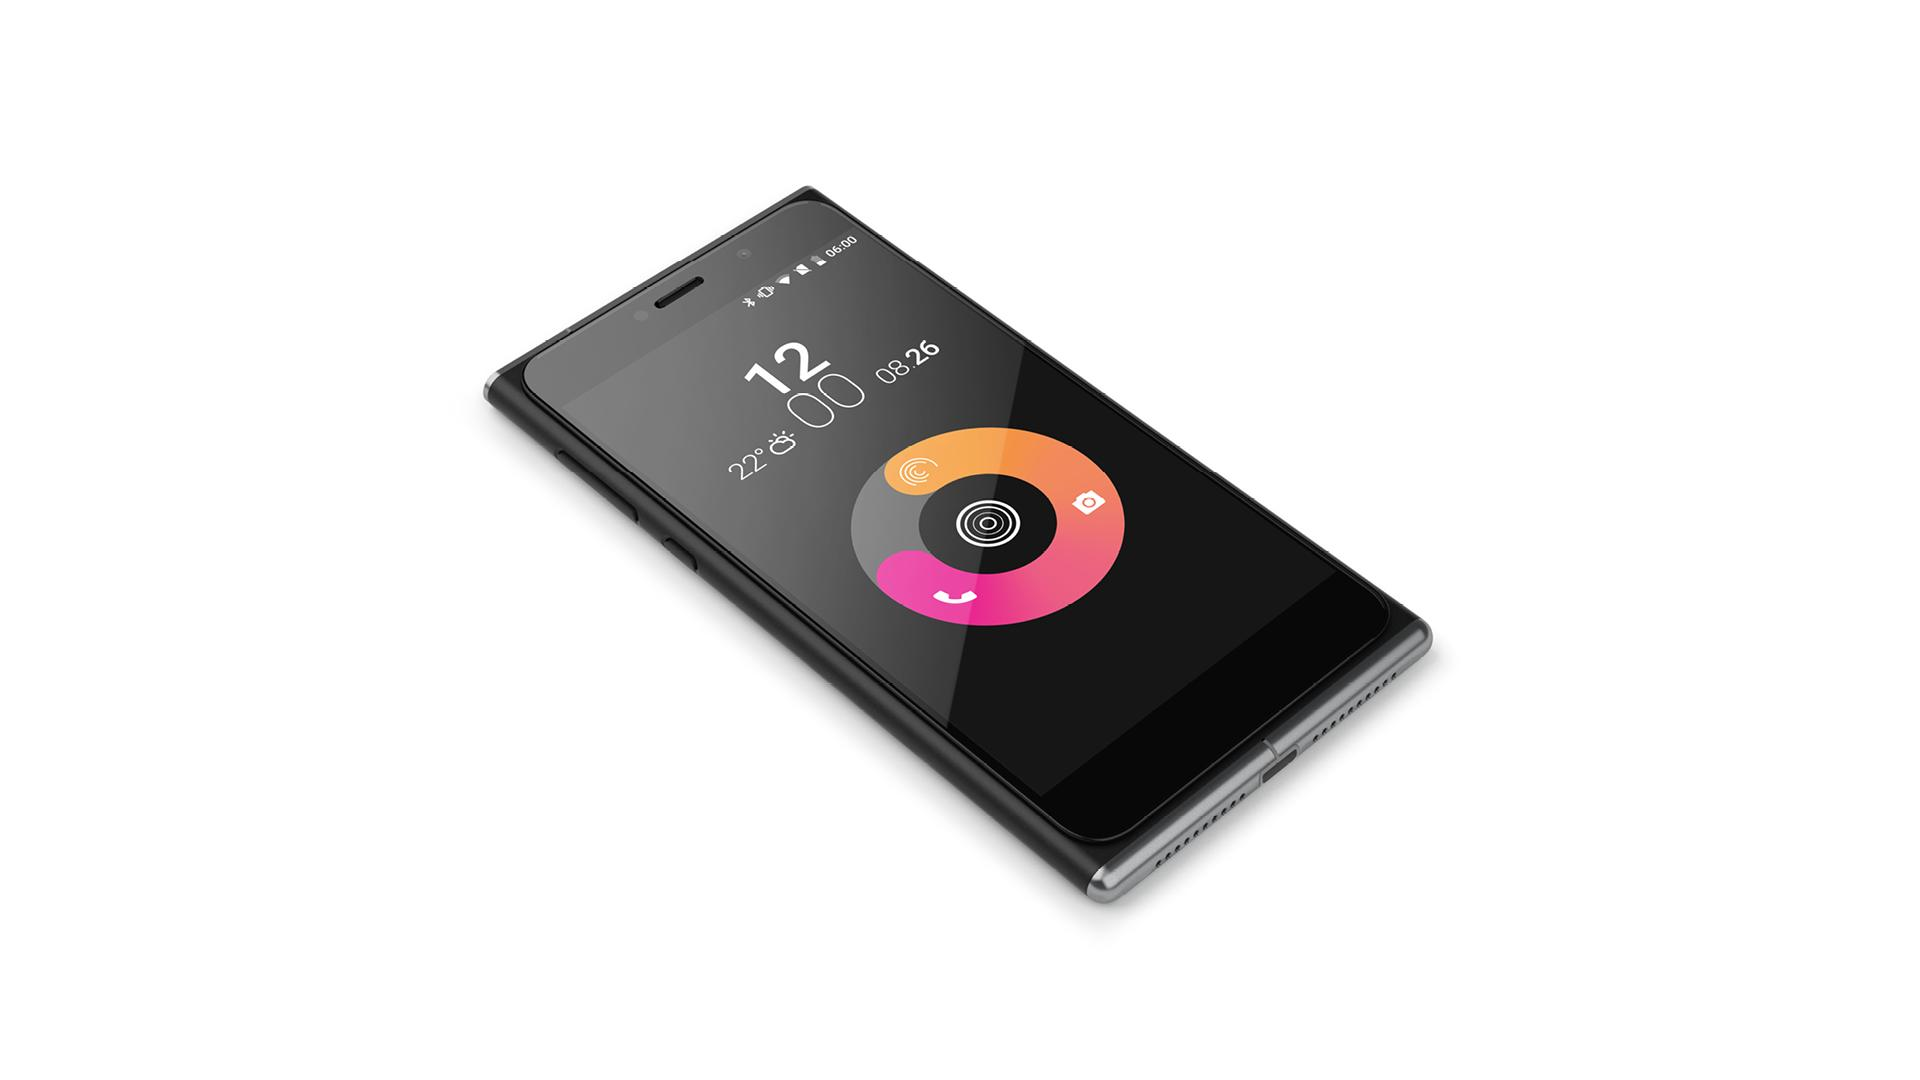 Obi reveals its first two low-cost smartphones from former Apple CEO John Sculley